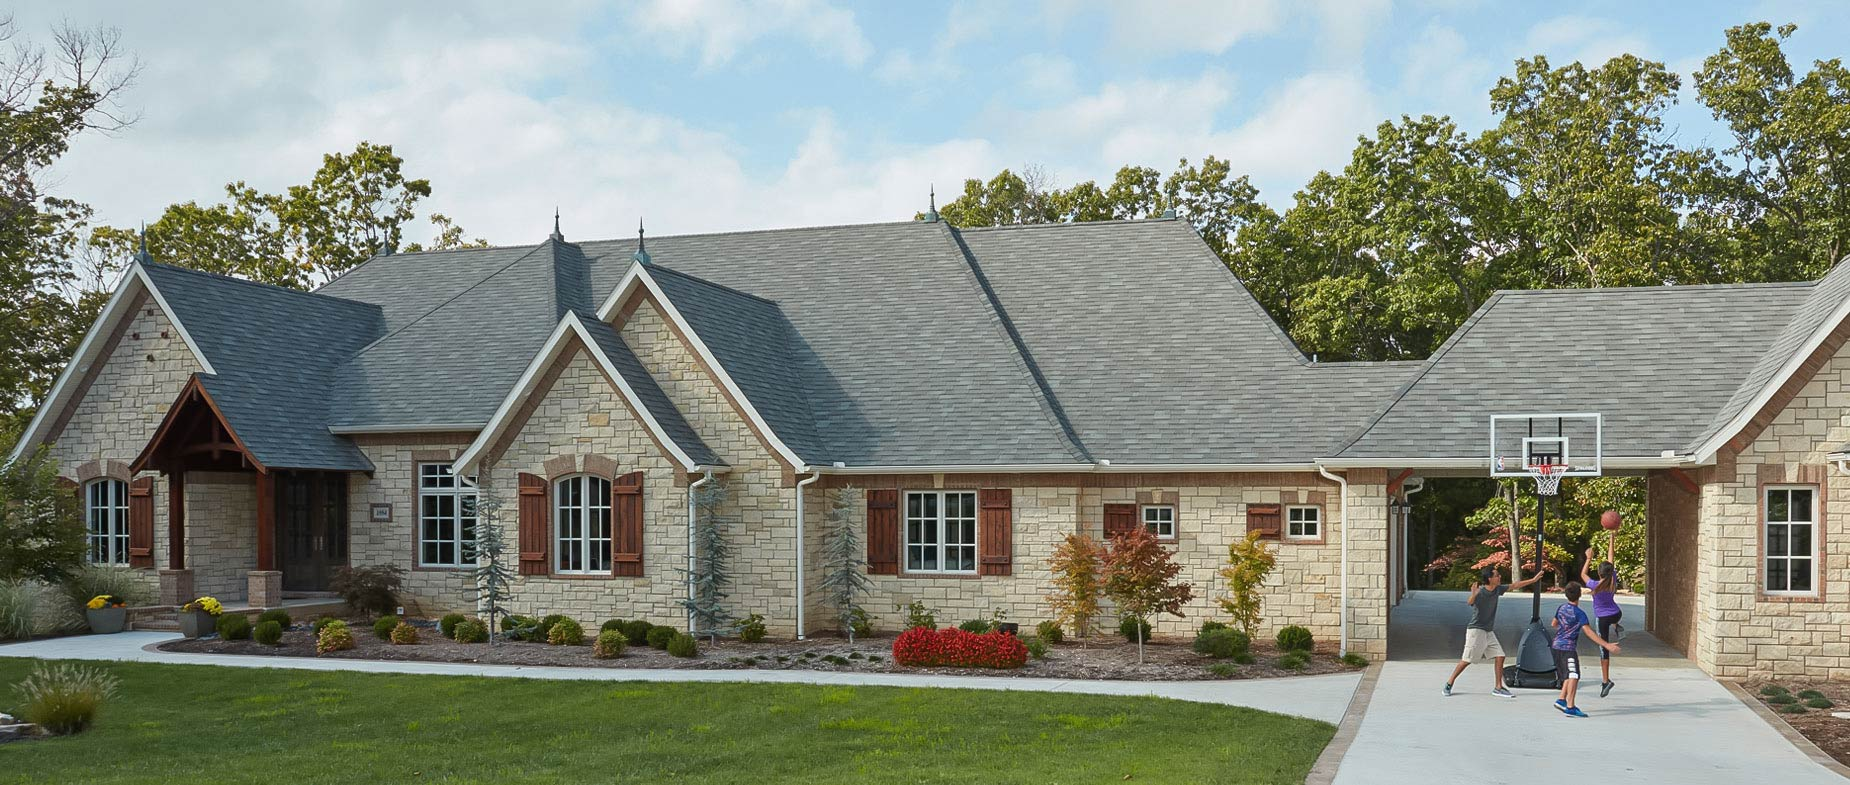 TAMKO Roofing From Century Building Materials